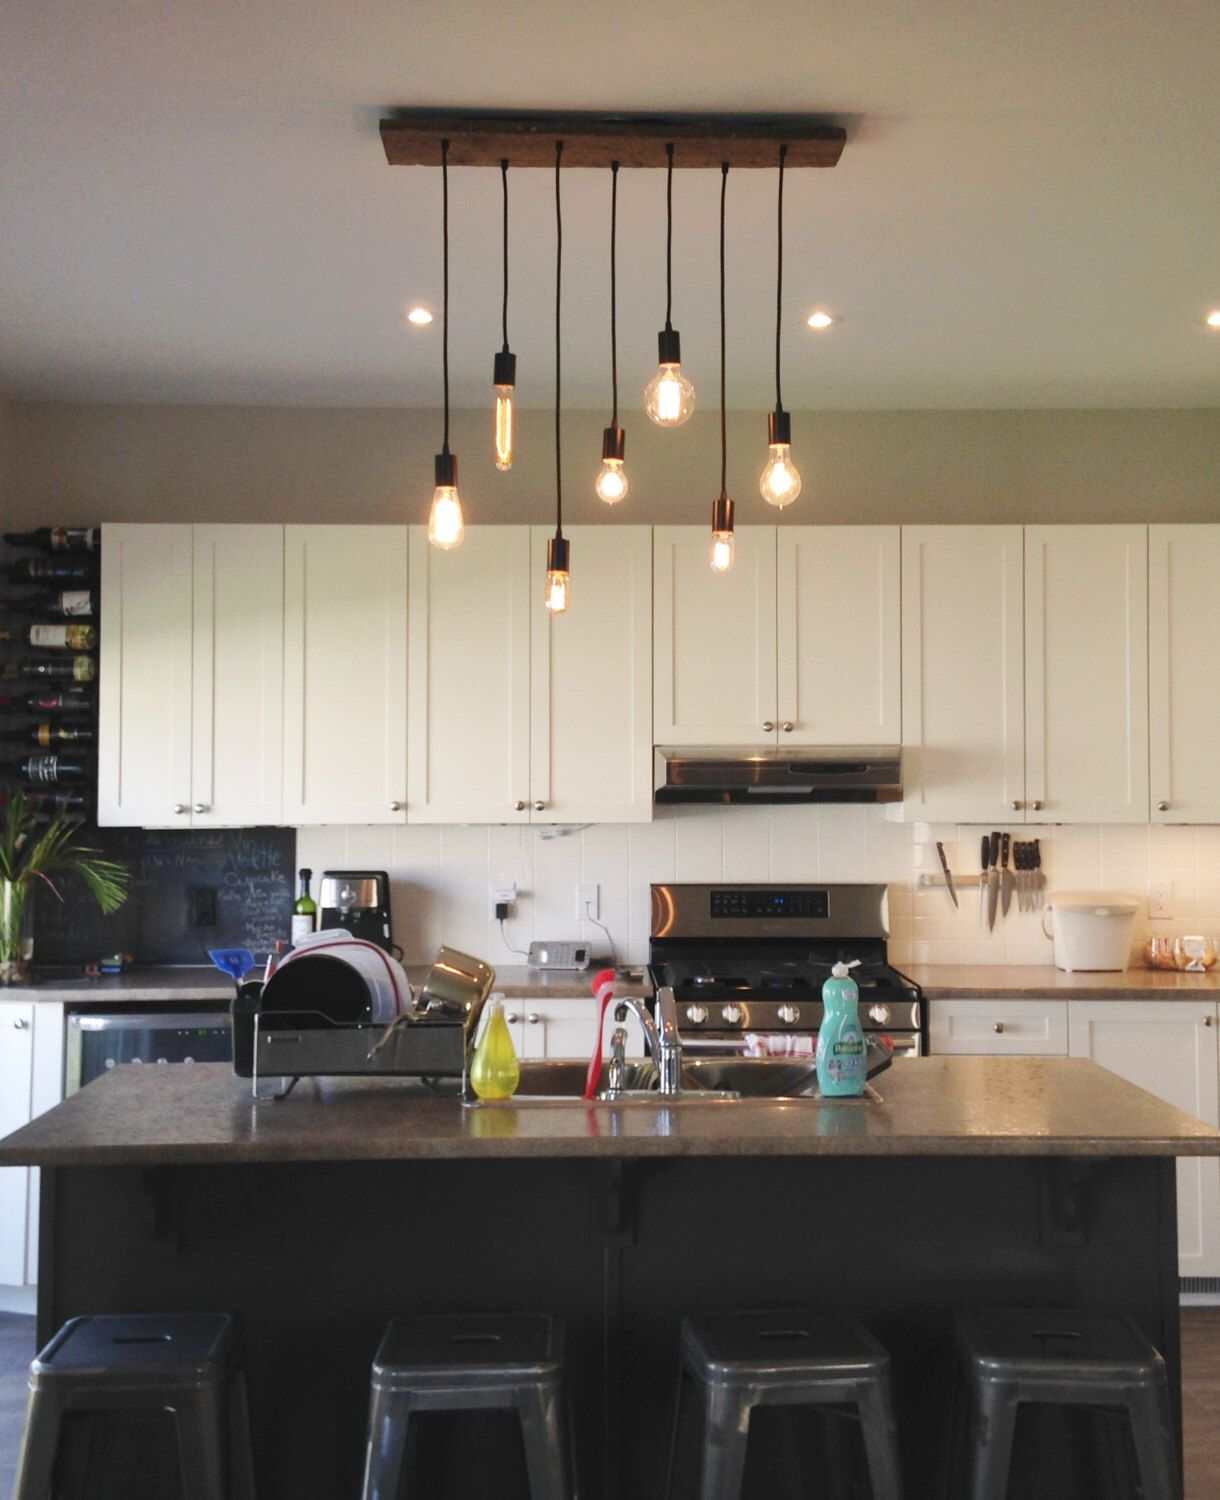 Modern Kitchen Wood Chandelier With Pendant Lights Modern Wood - Wood kitchen light fixtures